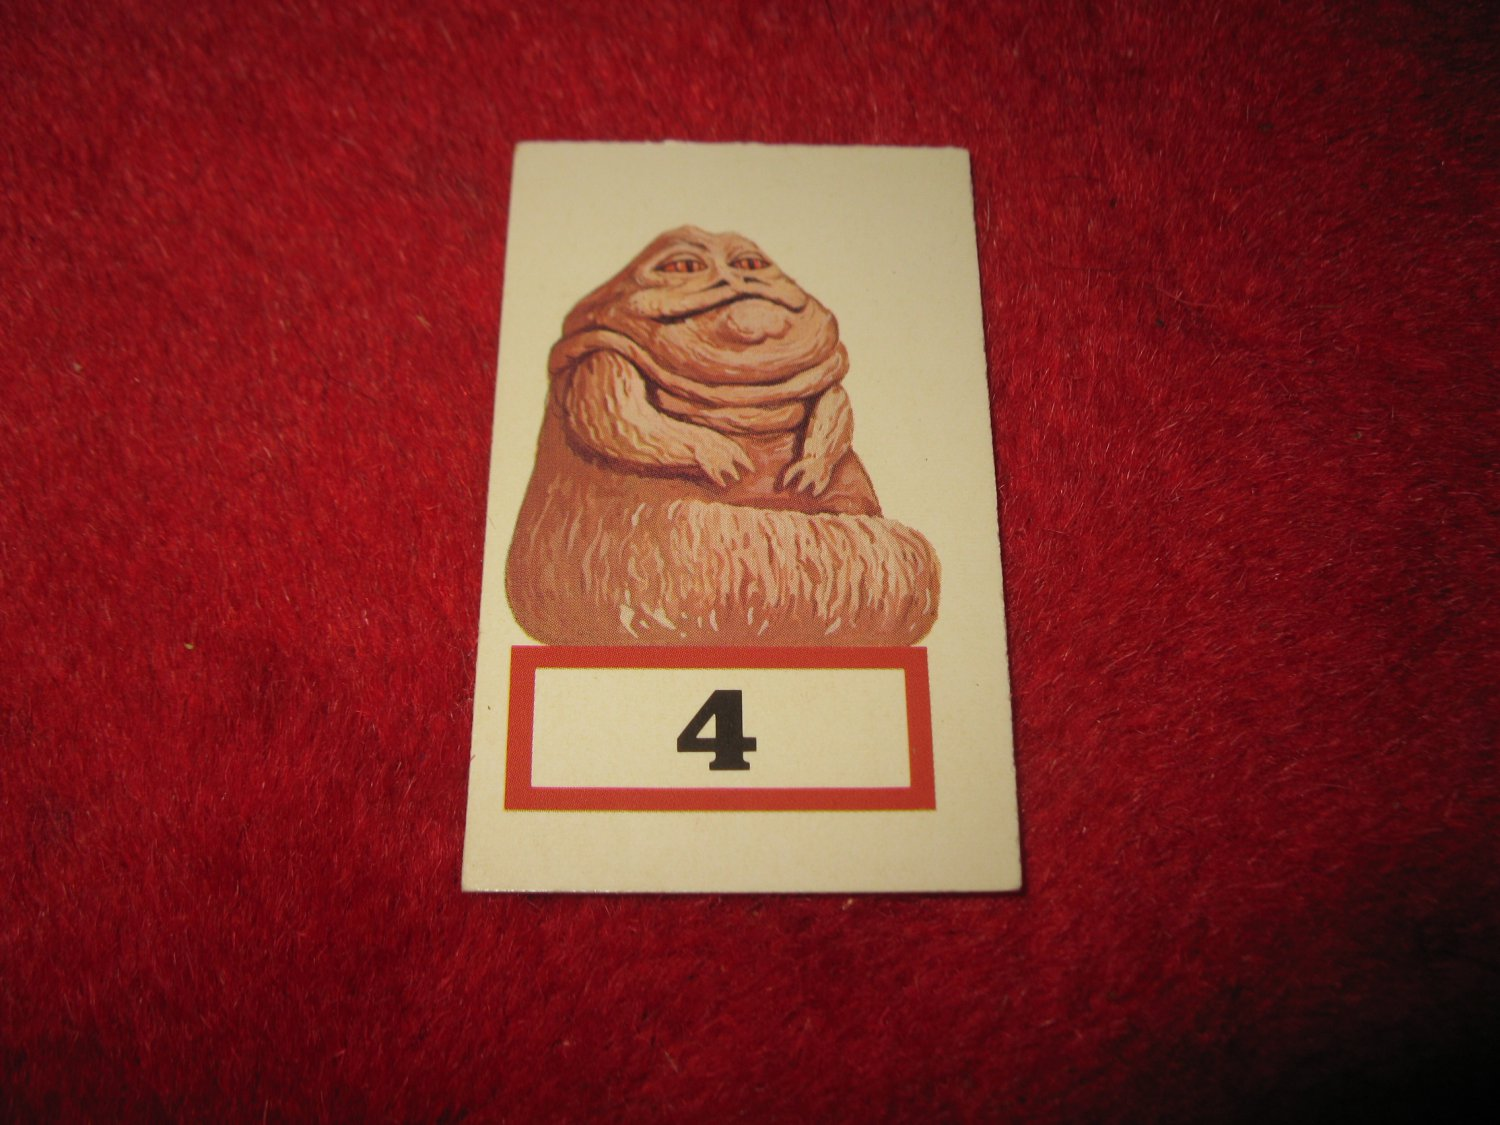 1983 Star Wars; Battle at Sarlacc's Pit Board Game Piece: #4 Jabba The Hutt Game Card